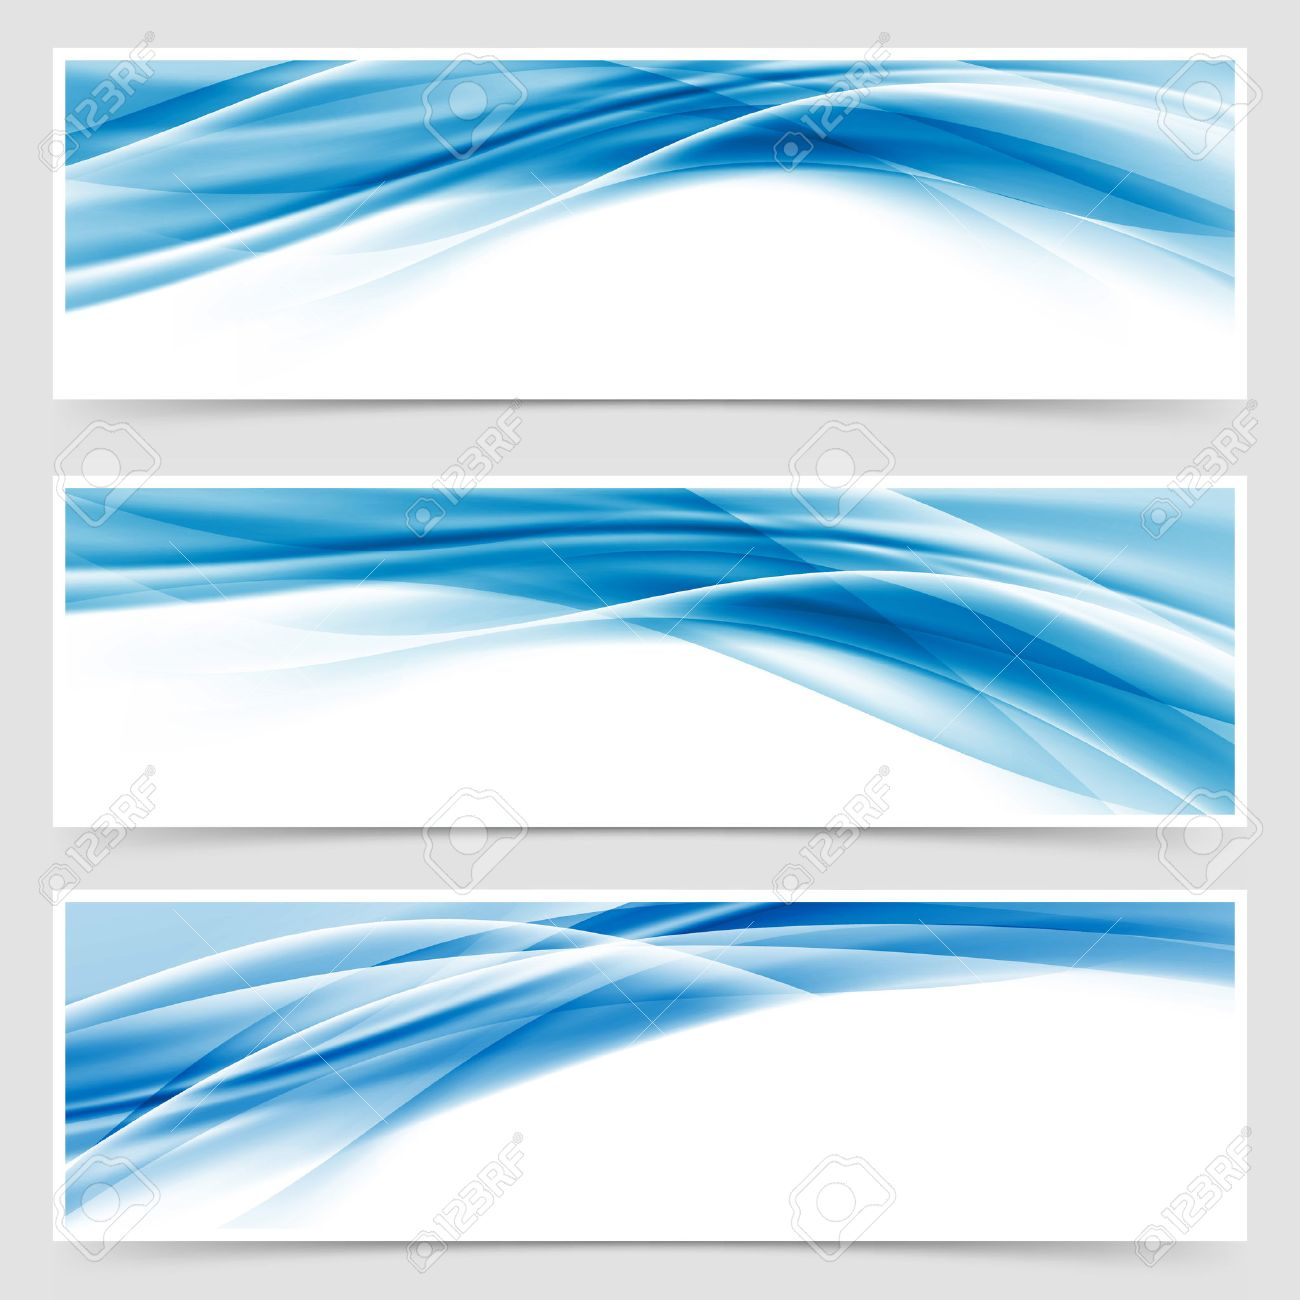 Charmant Beautiful Hi Tech Blue Header Footer Swoosh Collection Web Modern Abstract  Transparent Border Layout.